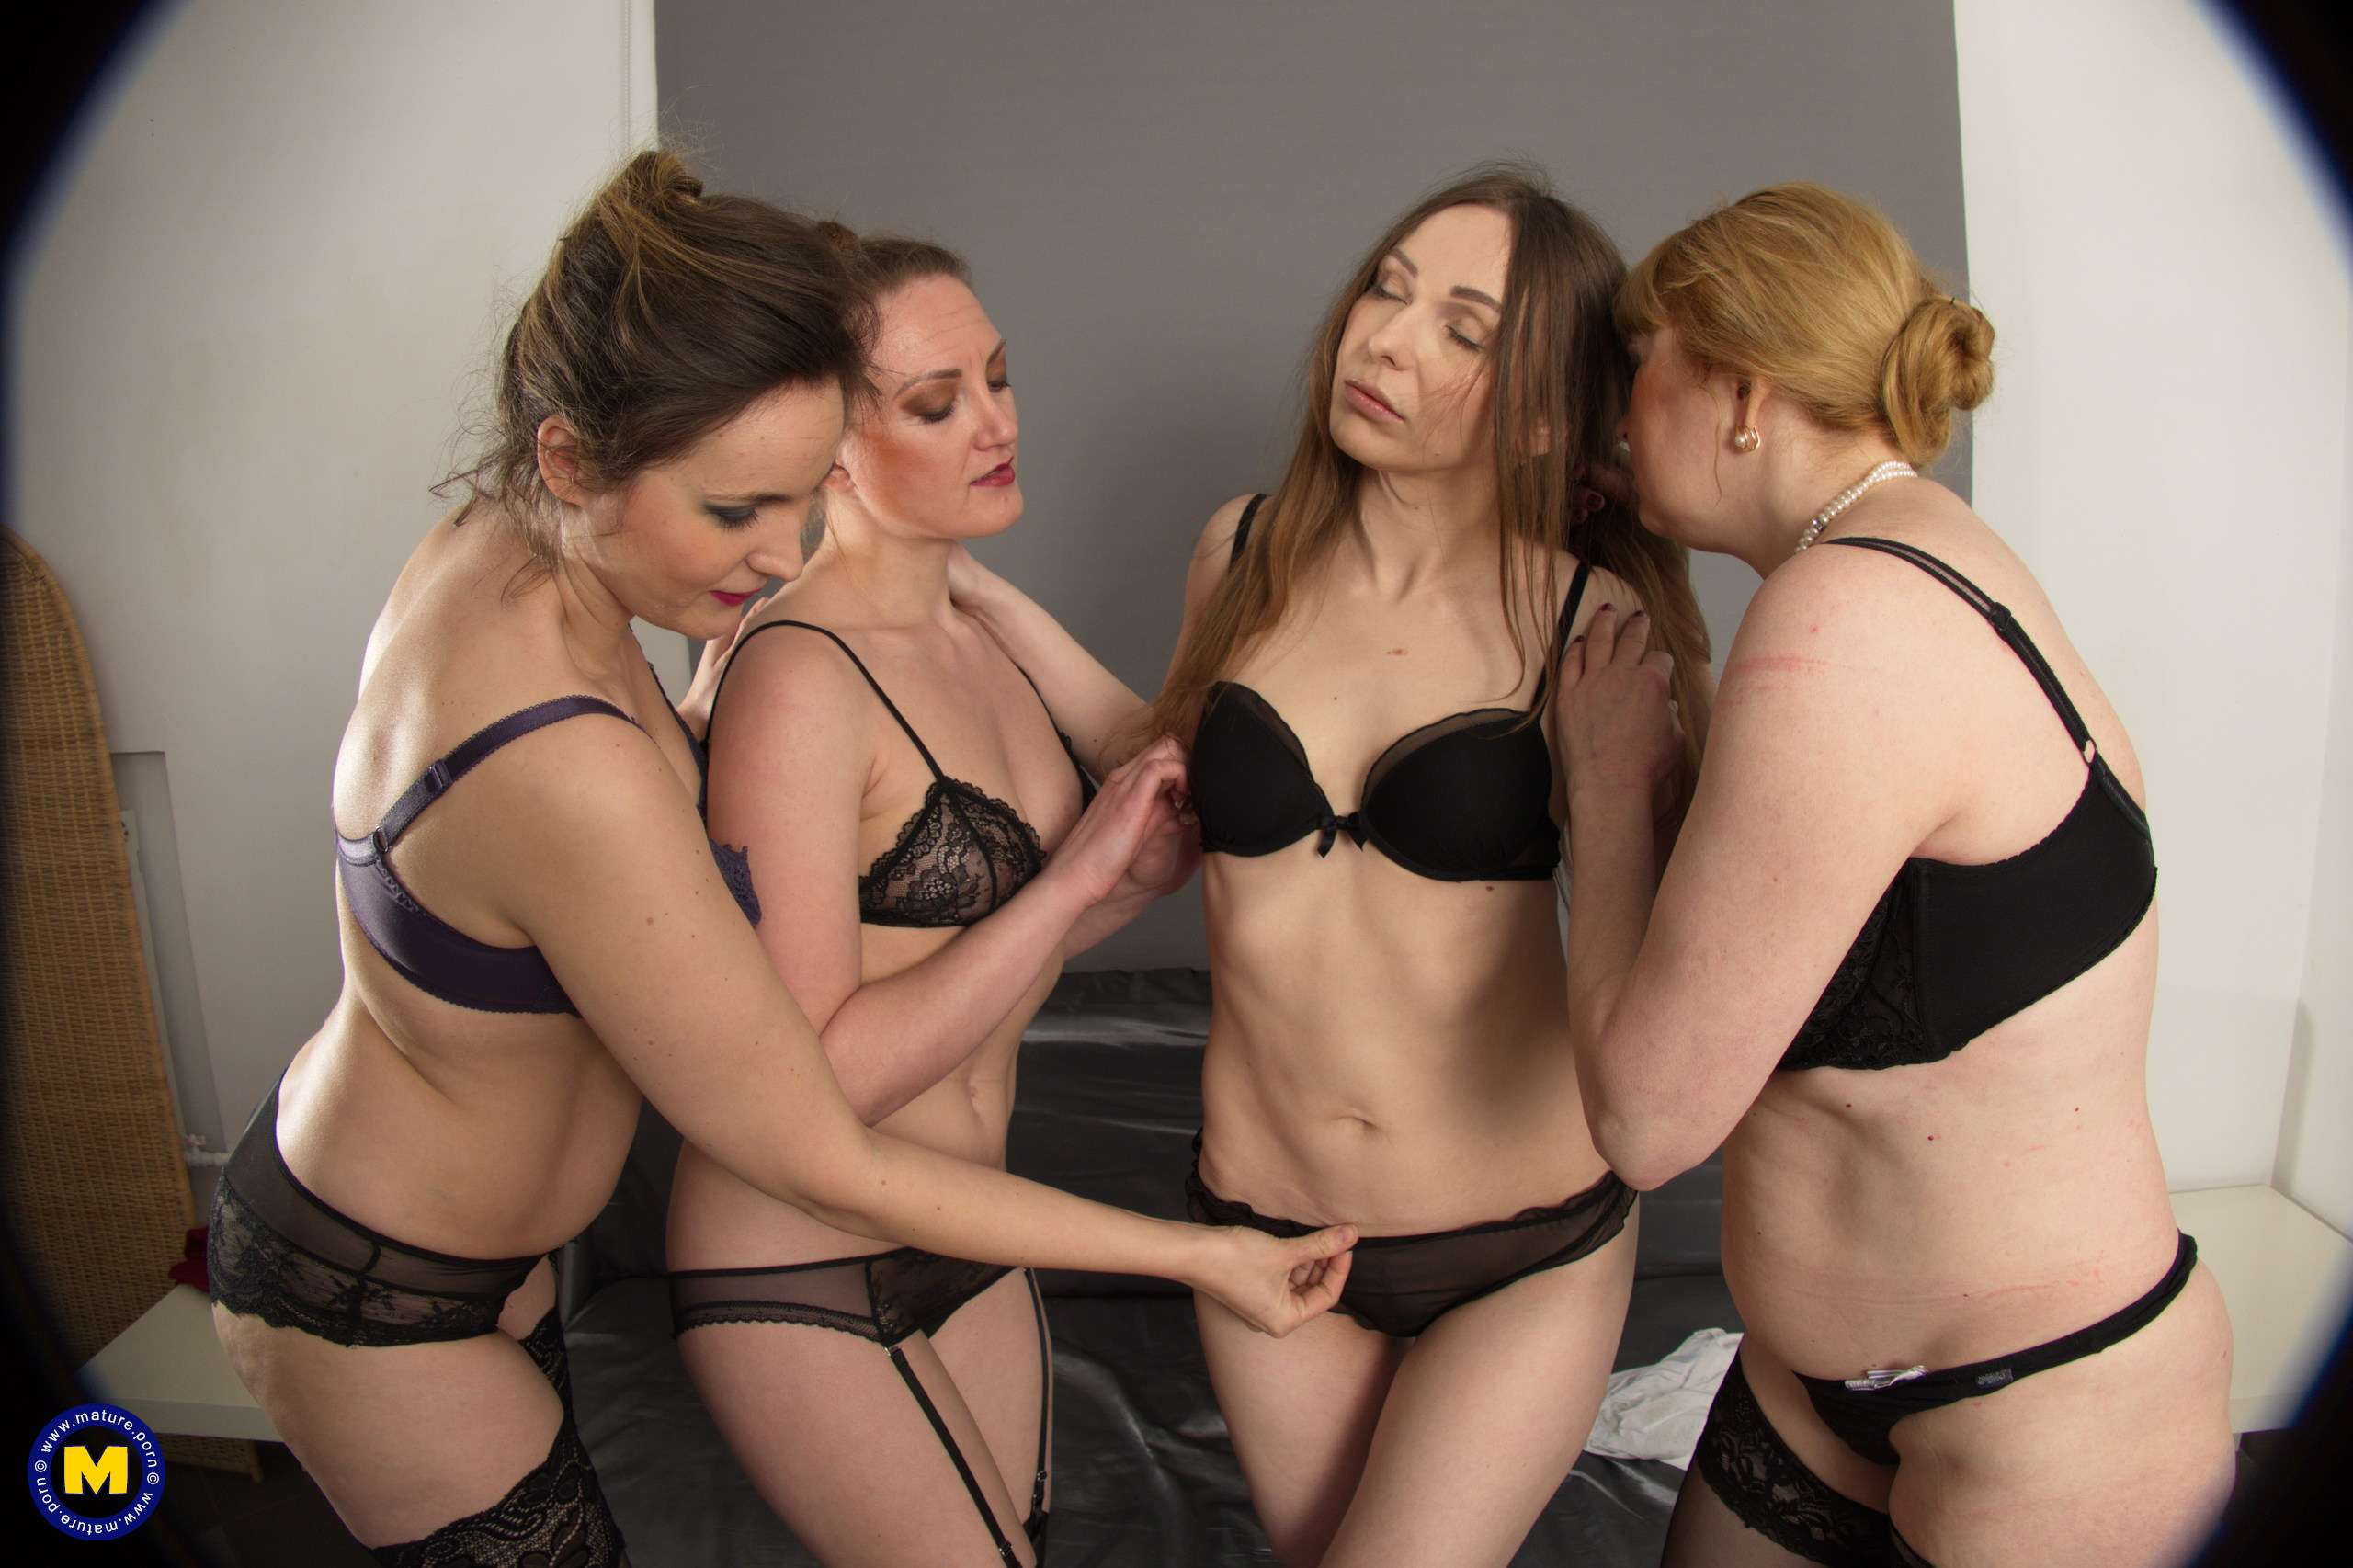 Four naughty housewives getting wet and wild